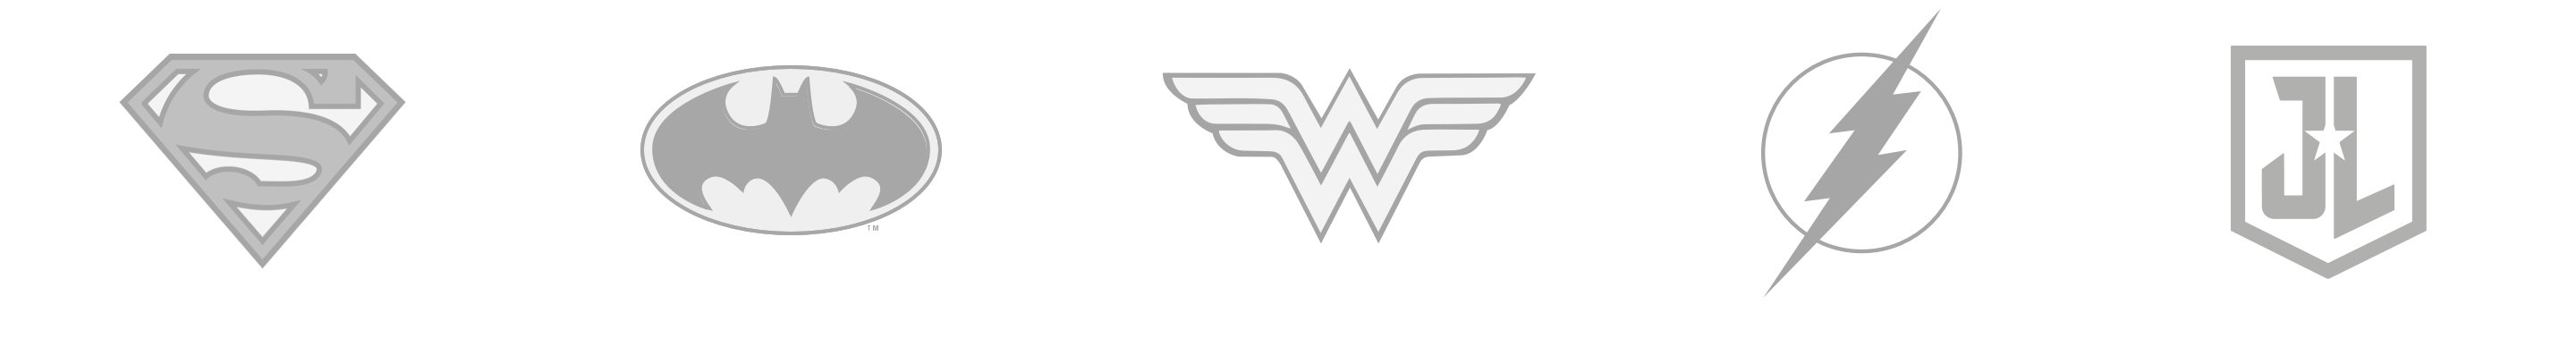 DC Comics Superhero Logos